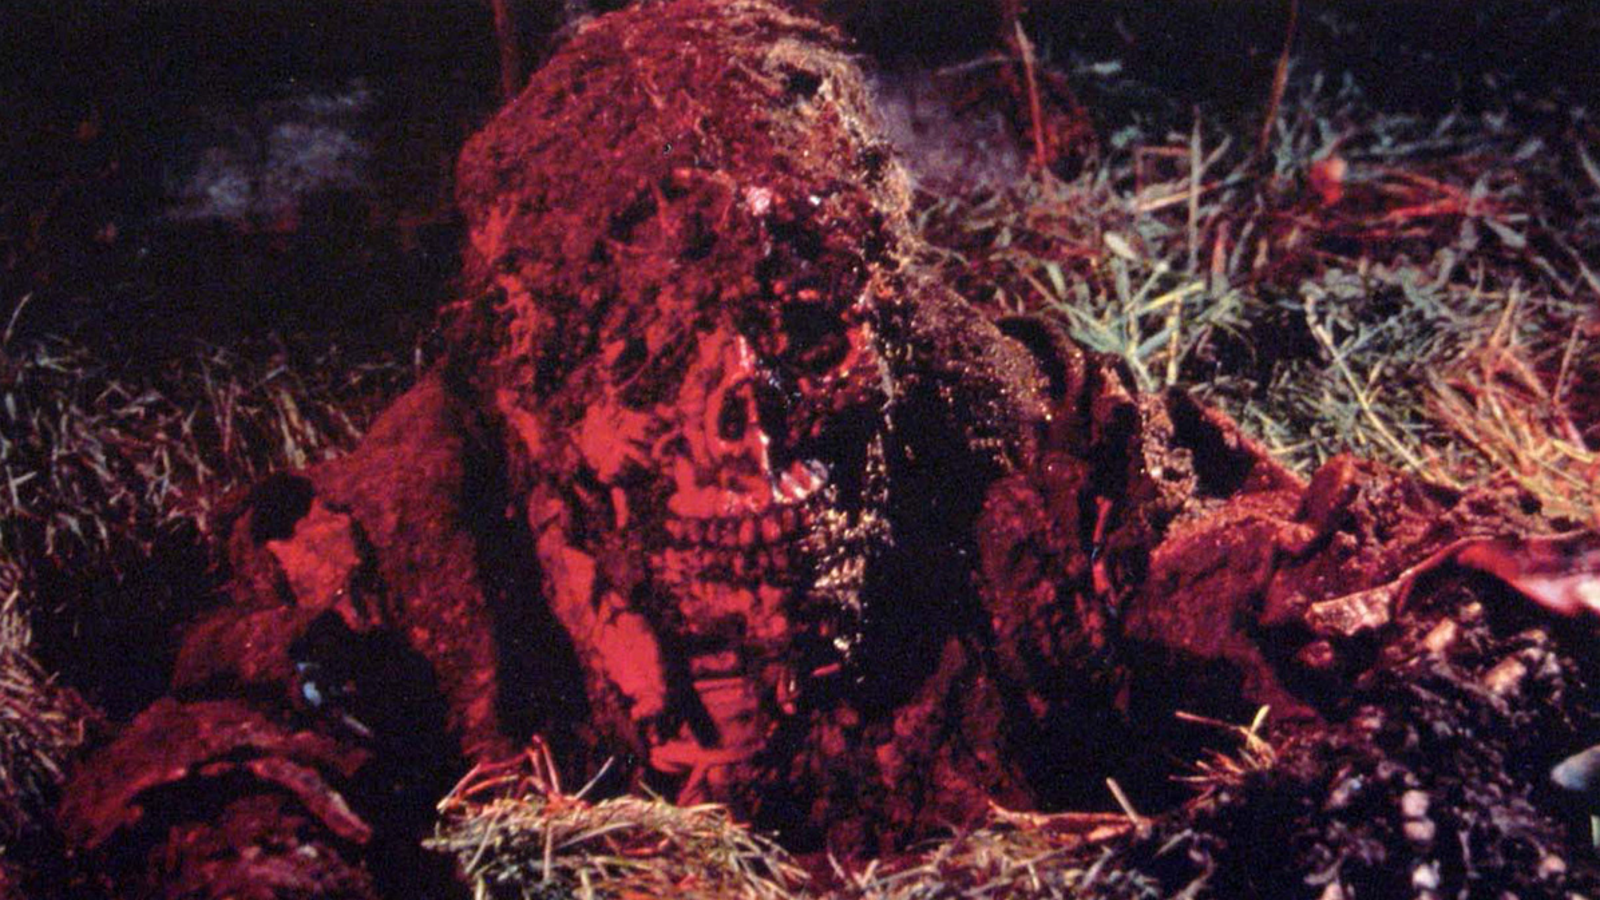 Shudder's Creepshow Revival Will Feature Stories From Stephen King and the Author of Bird Box